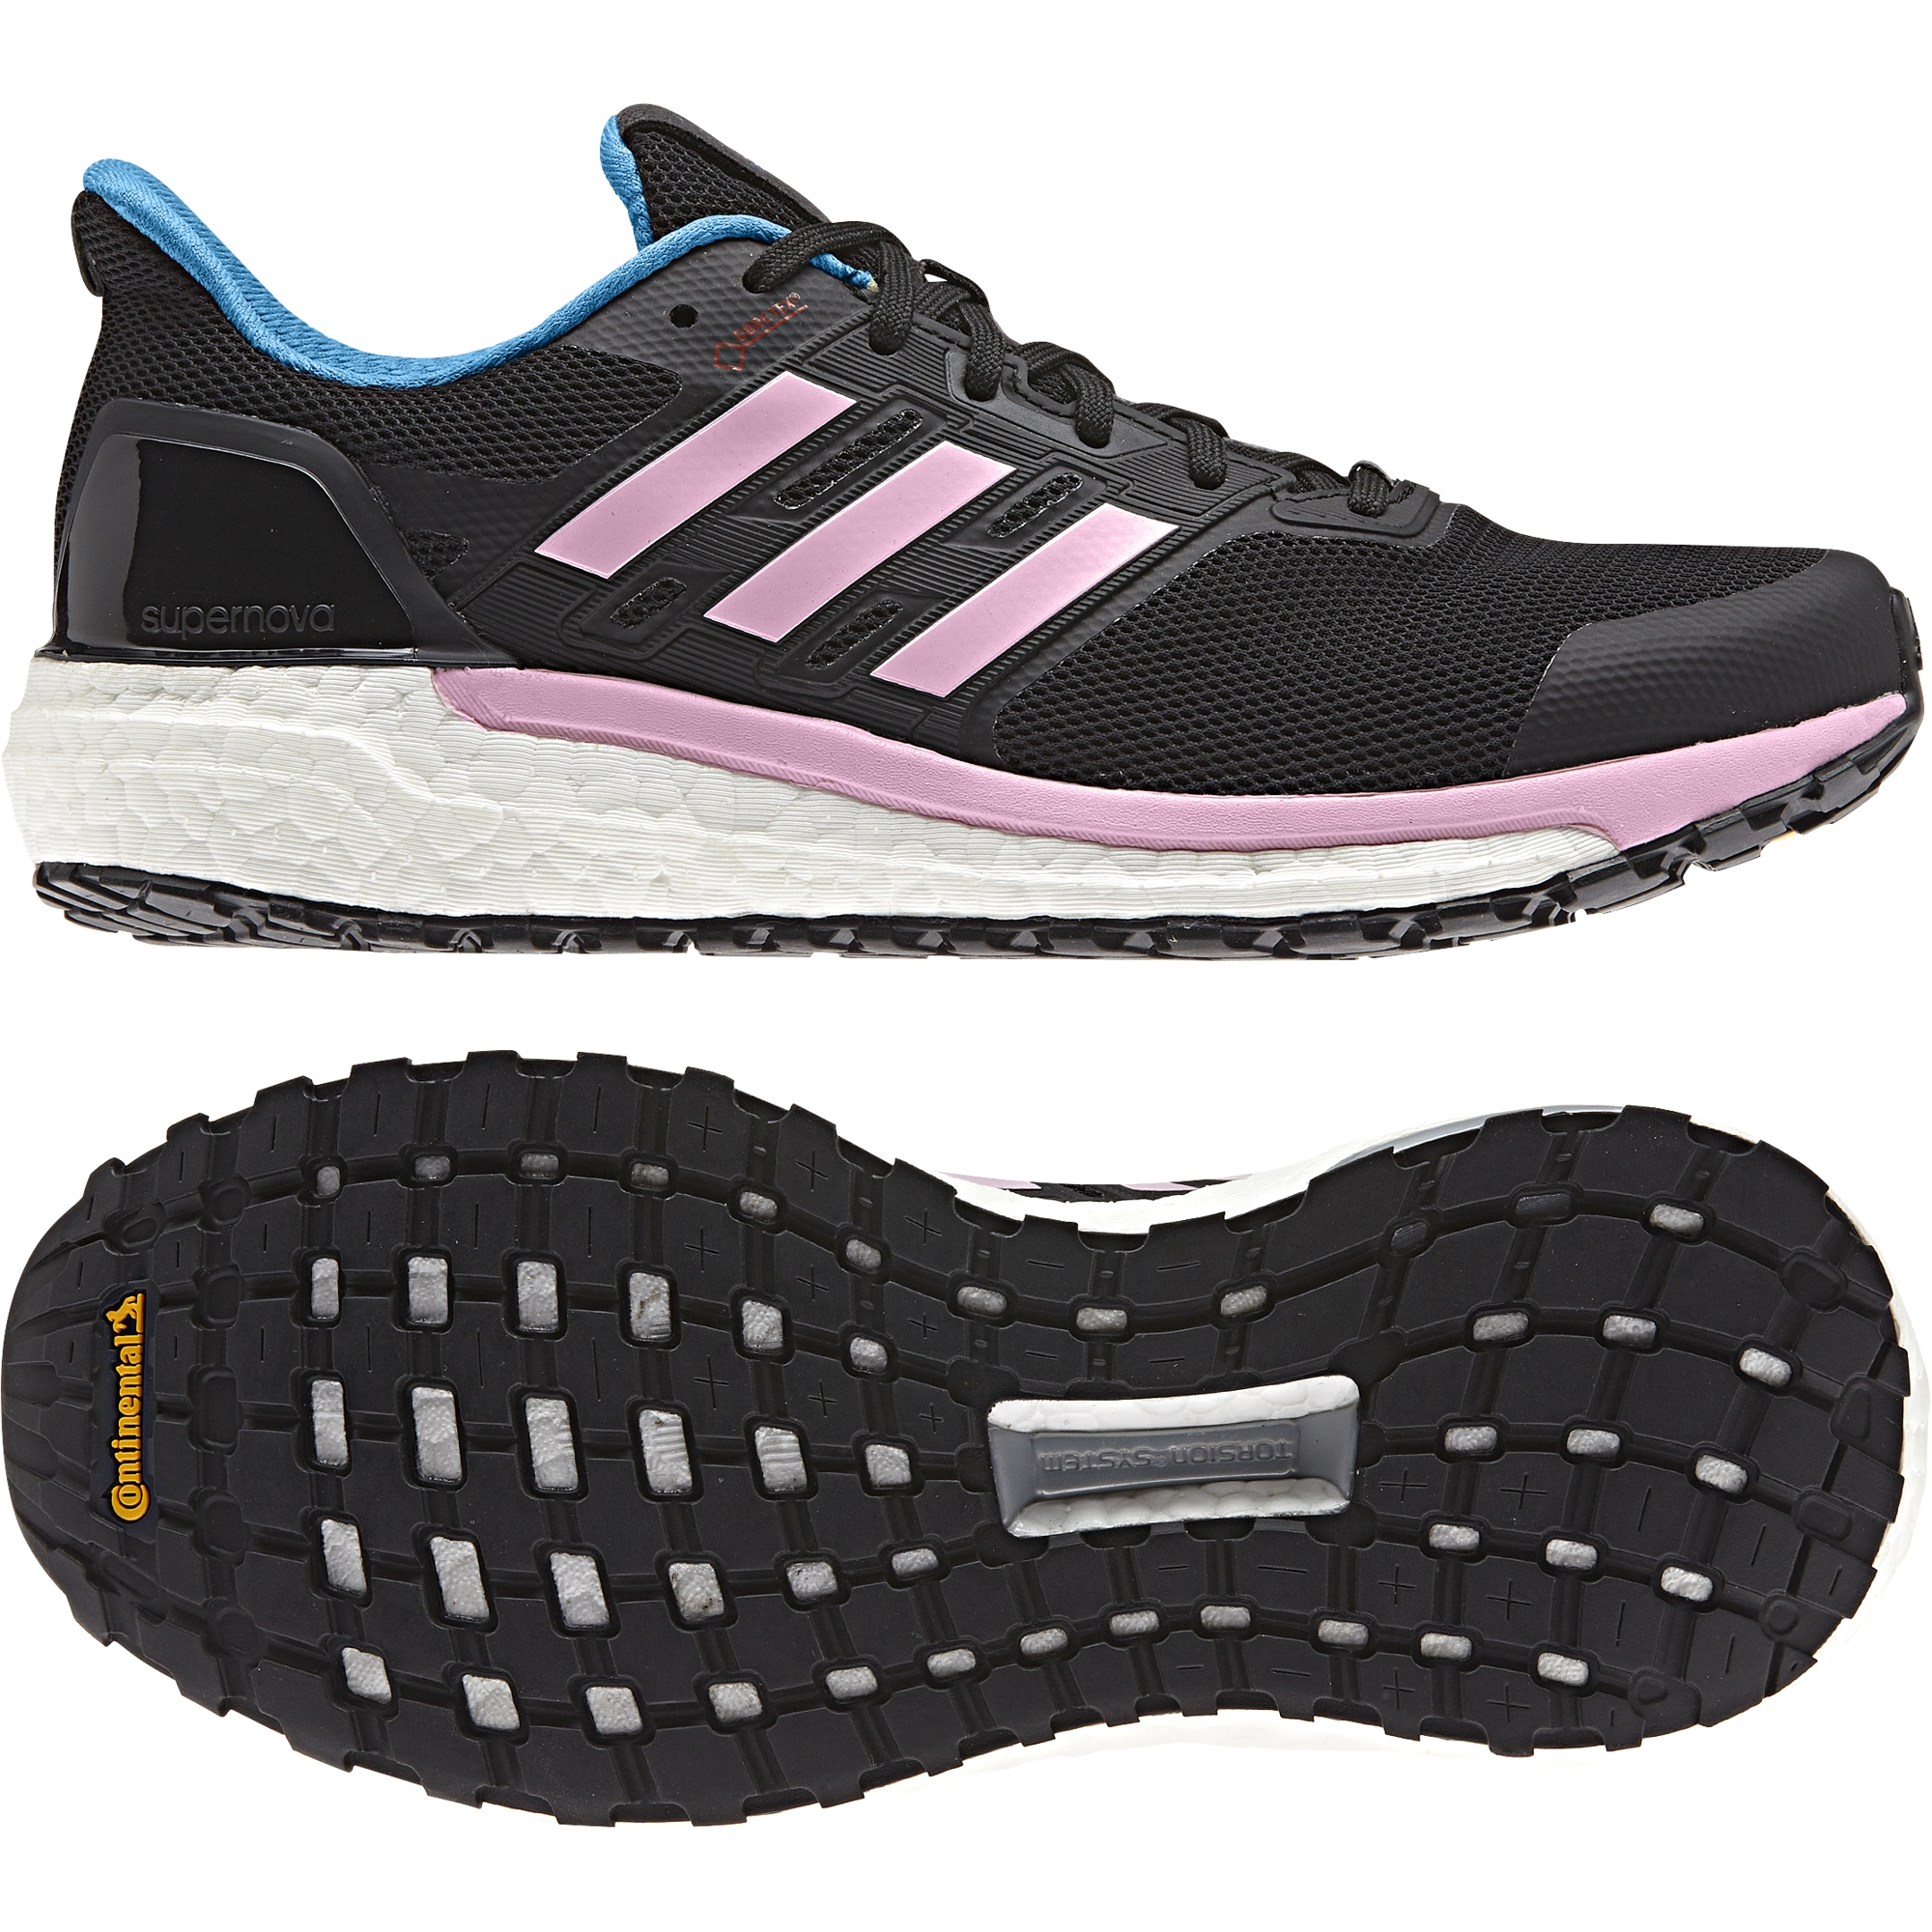 good looking 50% price ever popular Chaussures femme adidas Supernova Gore-Tex